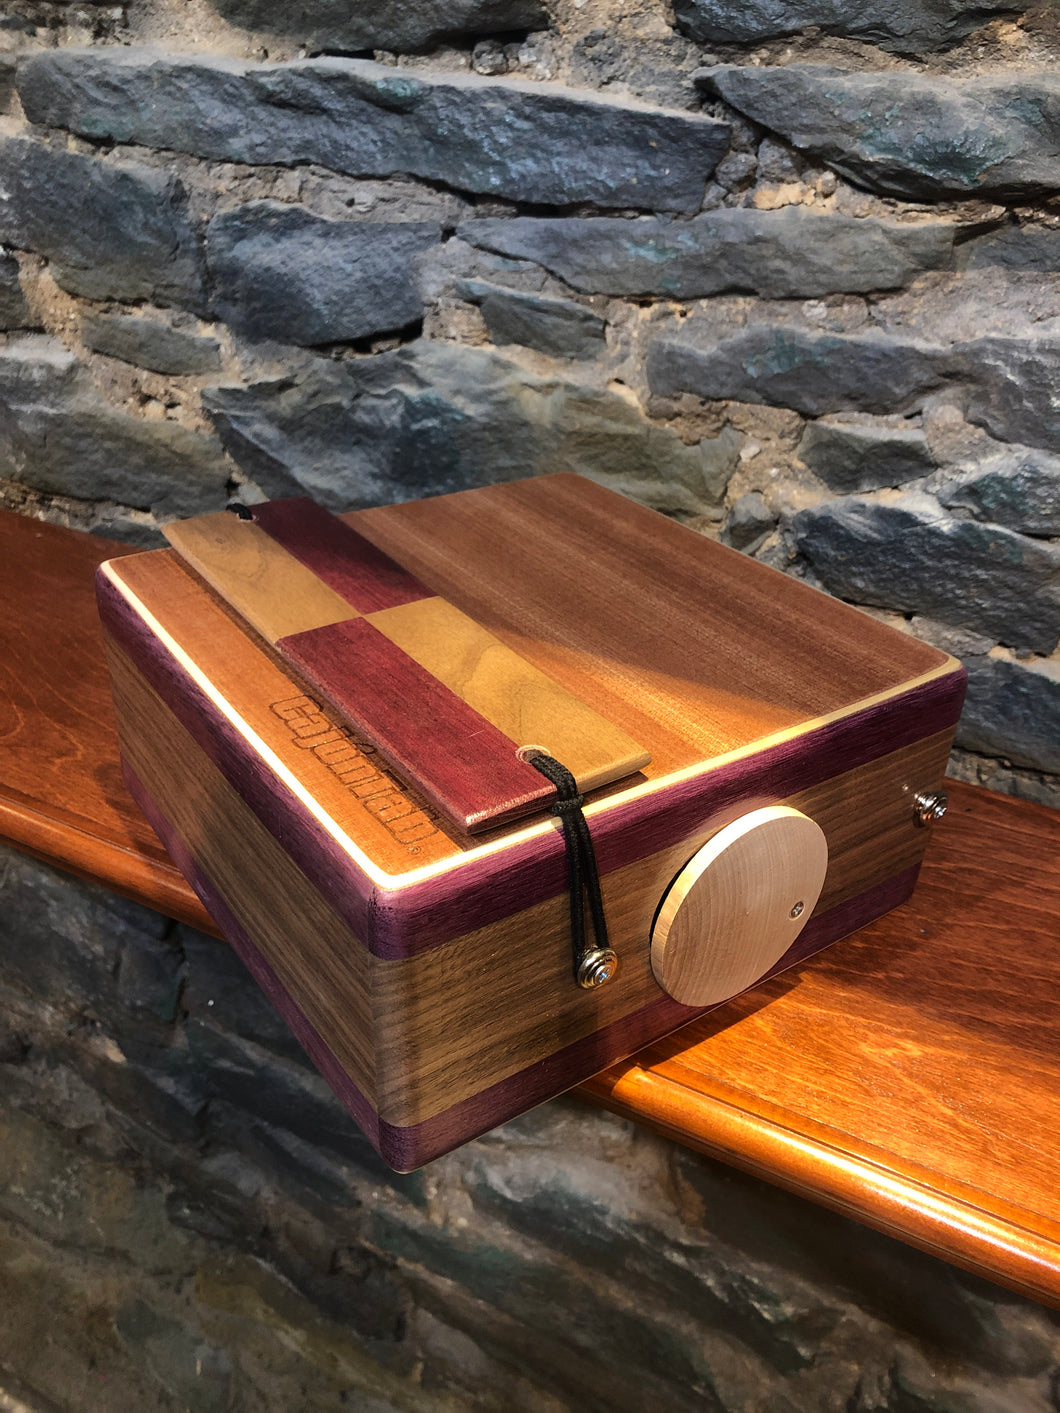 "10"" Pro Series CajonTab - purpleheart and walnut with checkered snare"